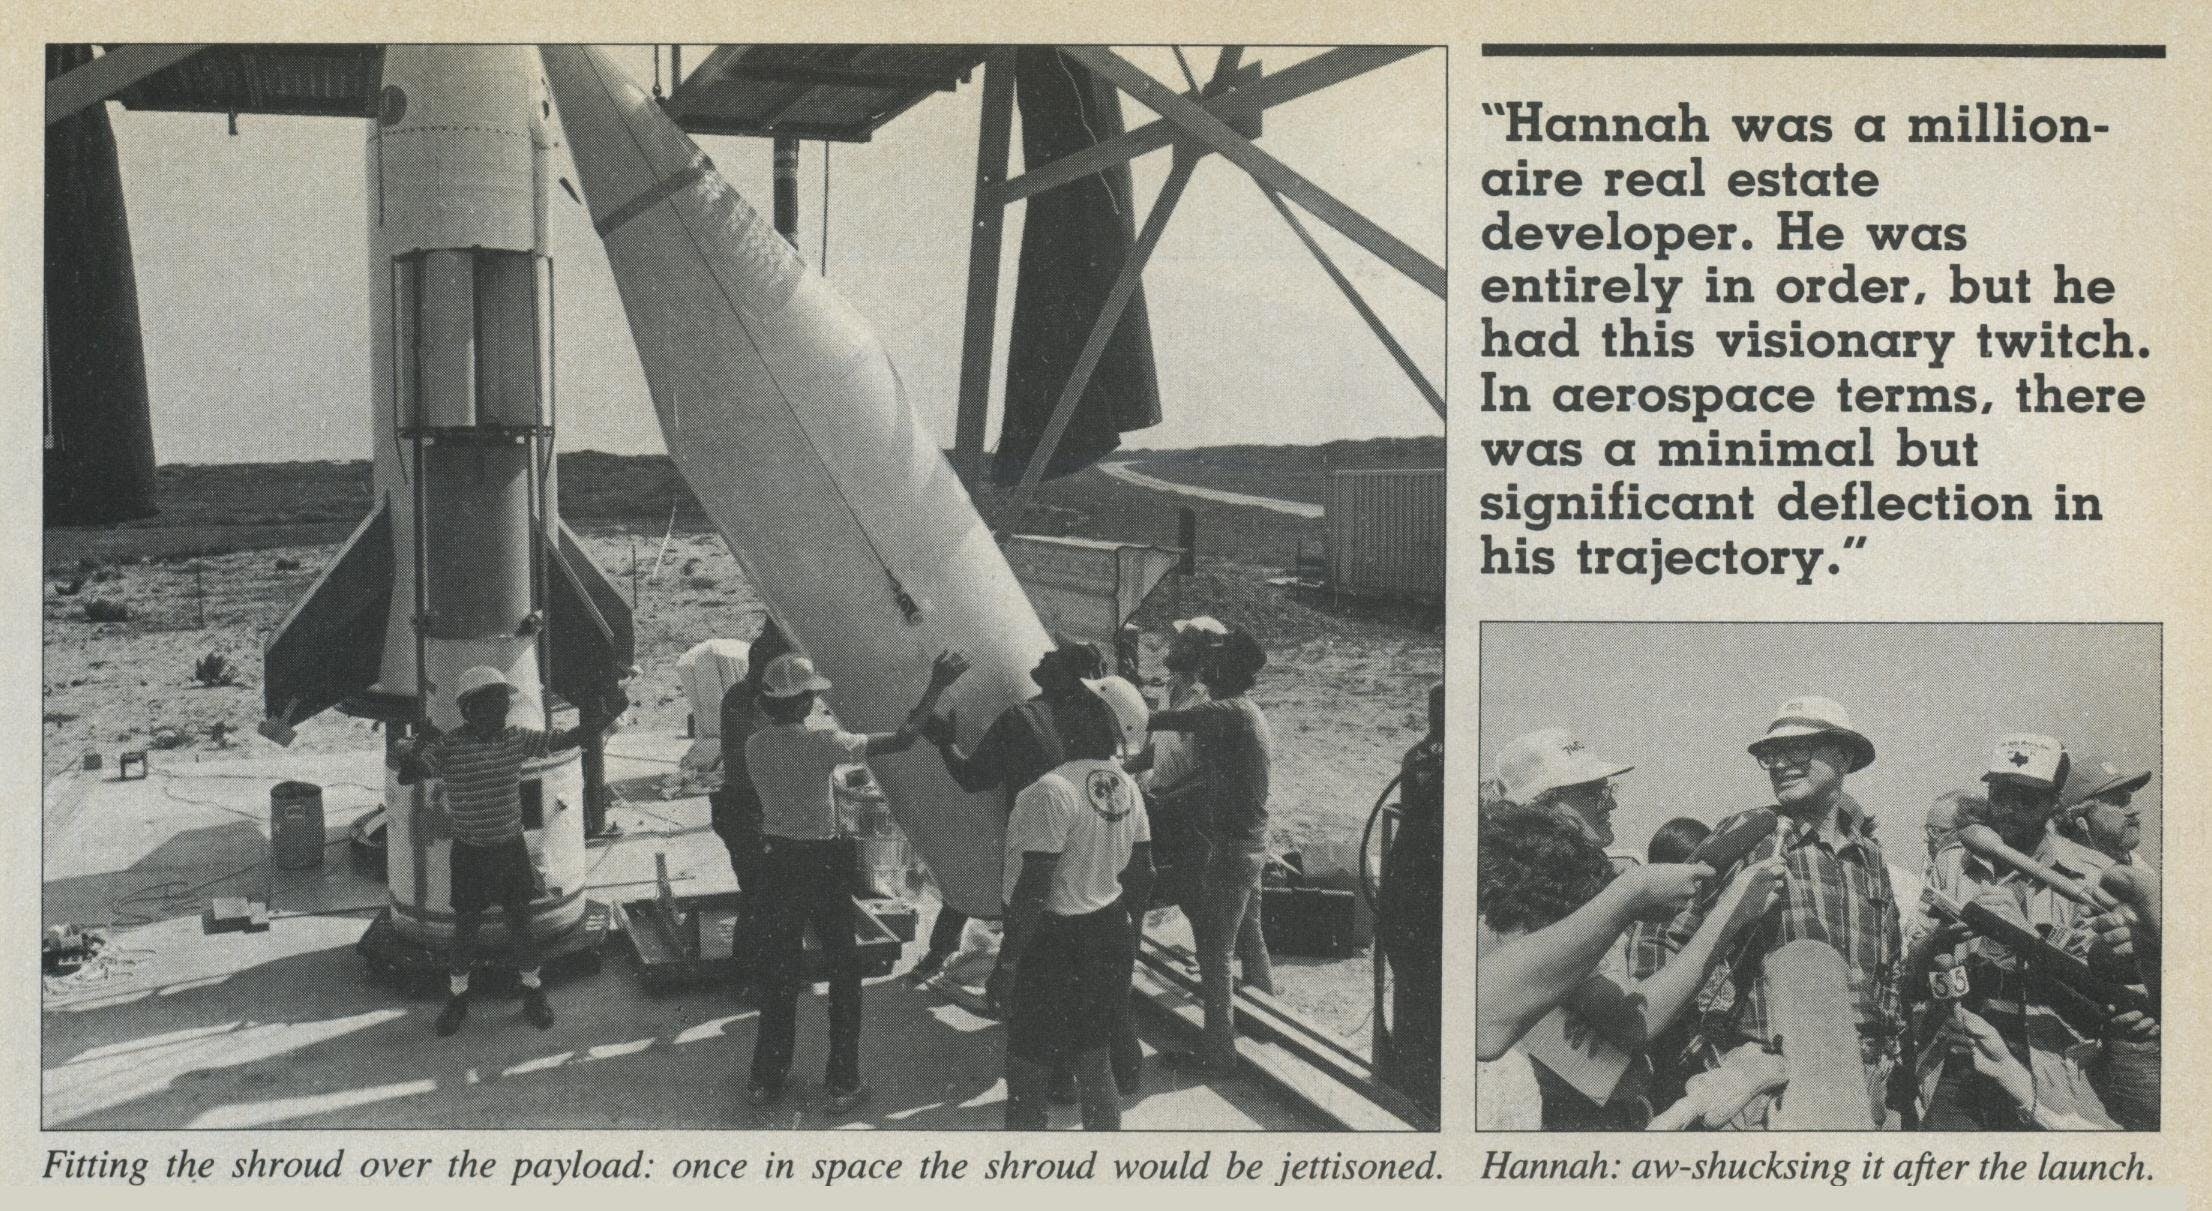 Mr Hannahs Rocket - 0009